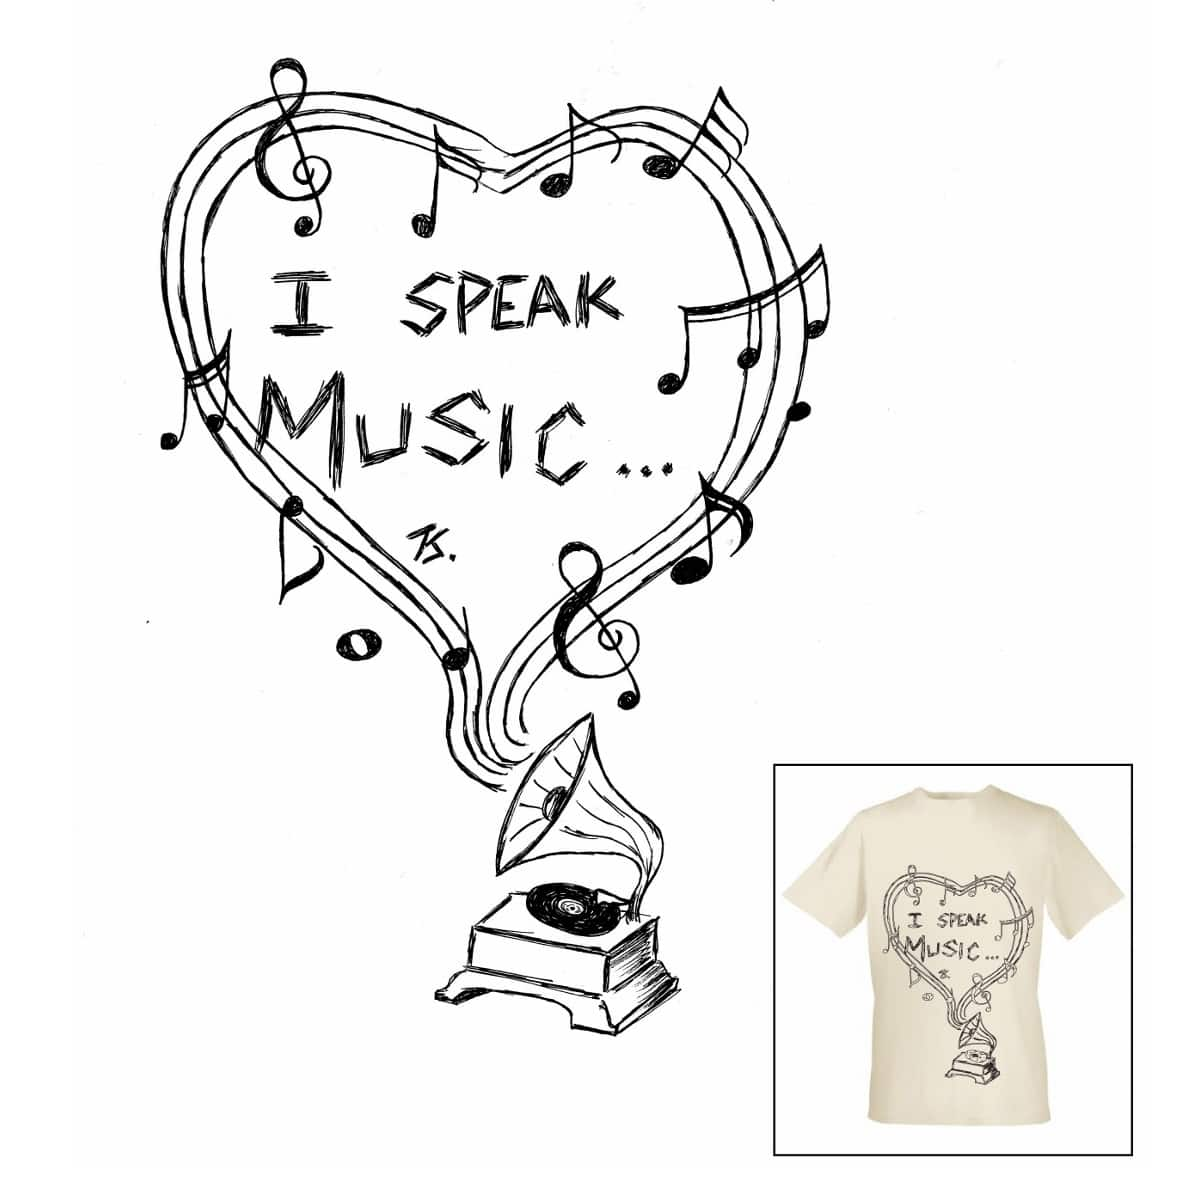 I speak Music by TavanS on Threadless